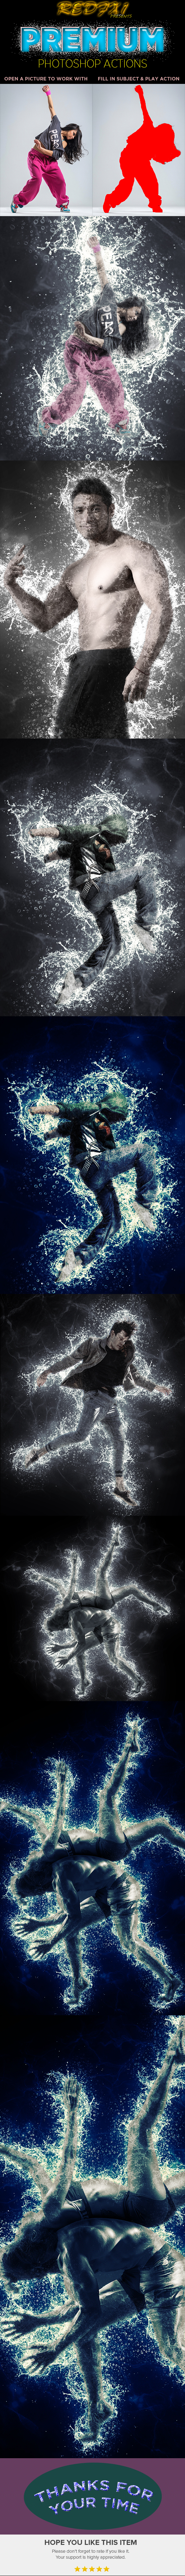 Gray Water Effect - Photo Effects Actions